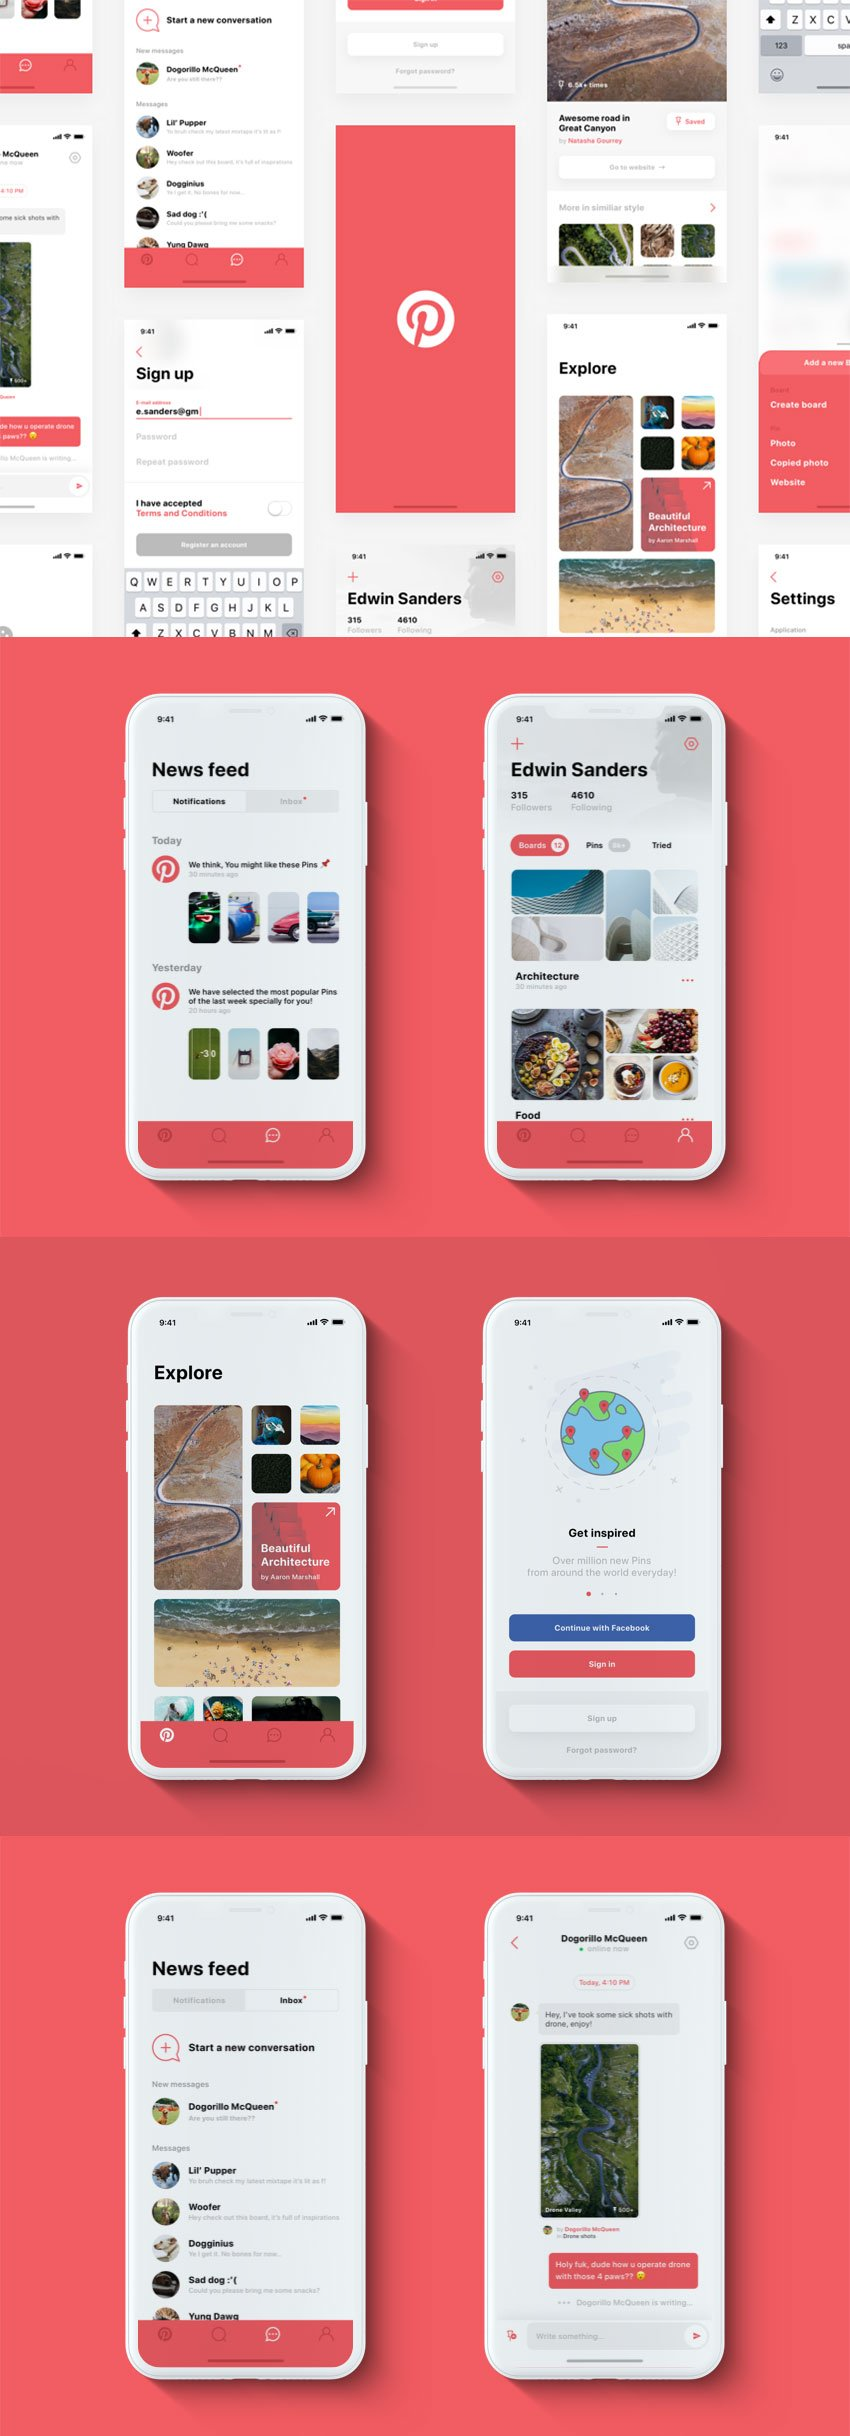 Pinterest app design concept free sketch for iphone x for Pinterest download